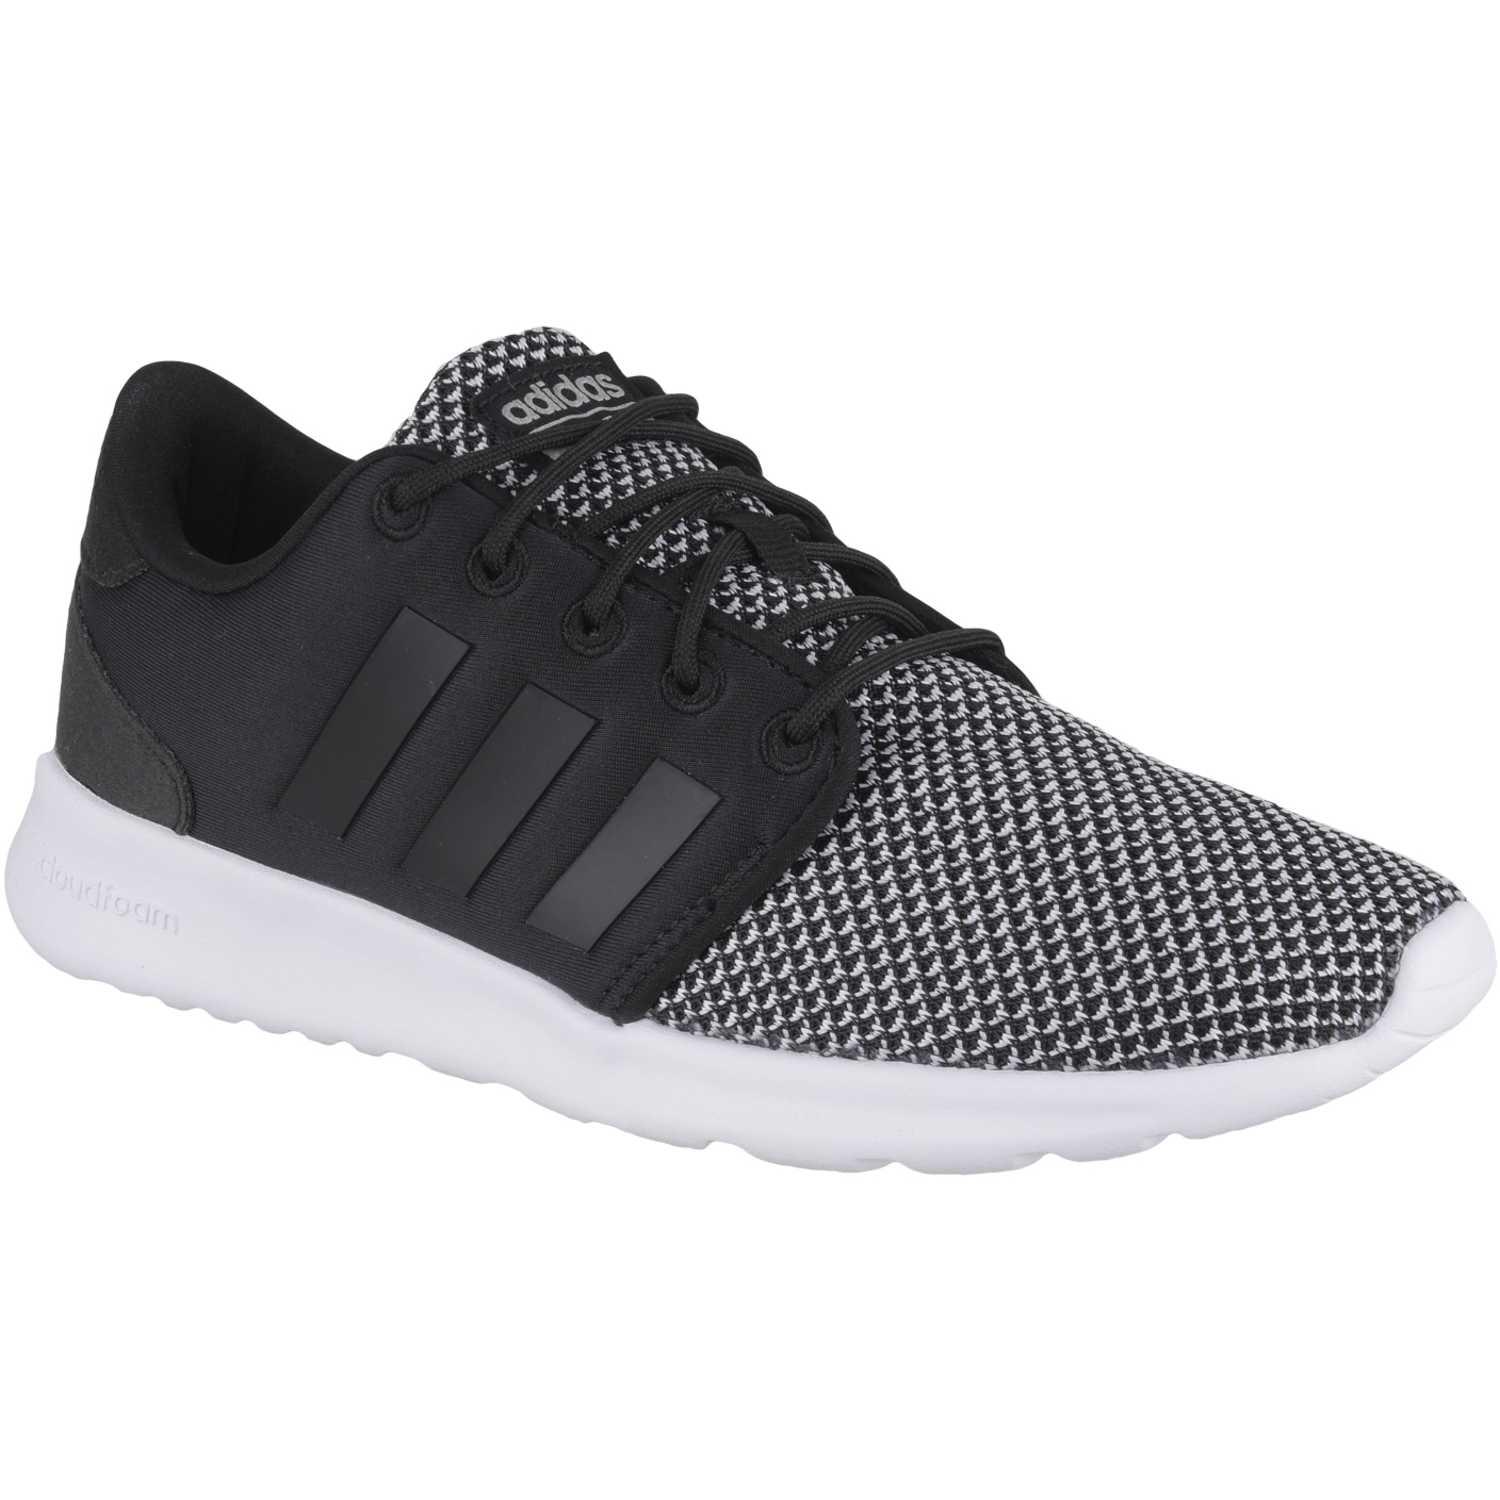 check out 0a594 8001f Zapatilla de Mujer adidas NEO Negro gris cf qt racer w